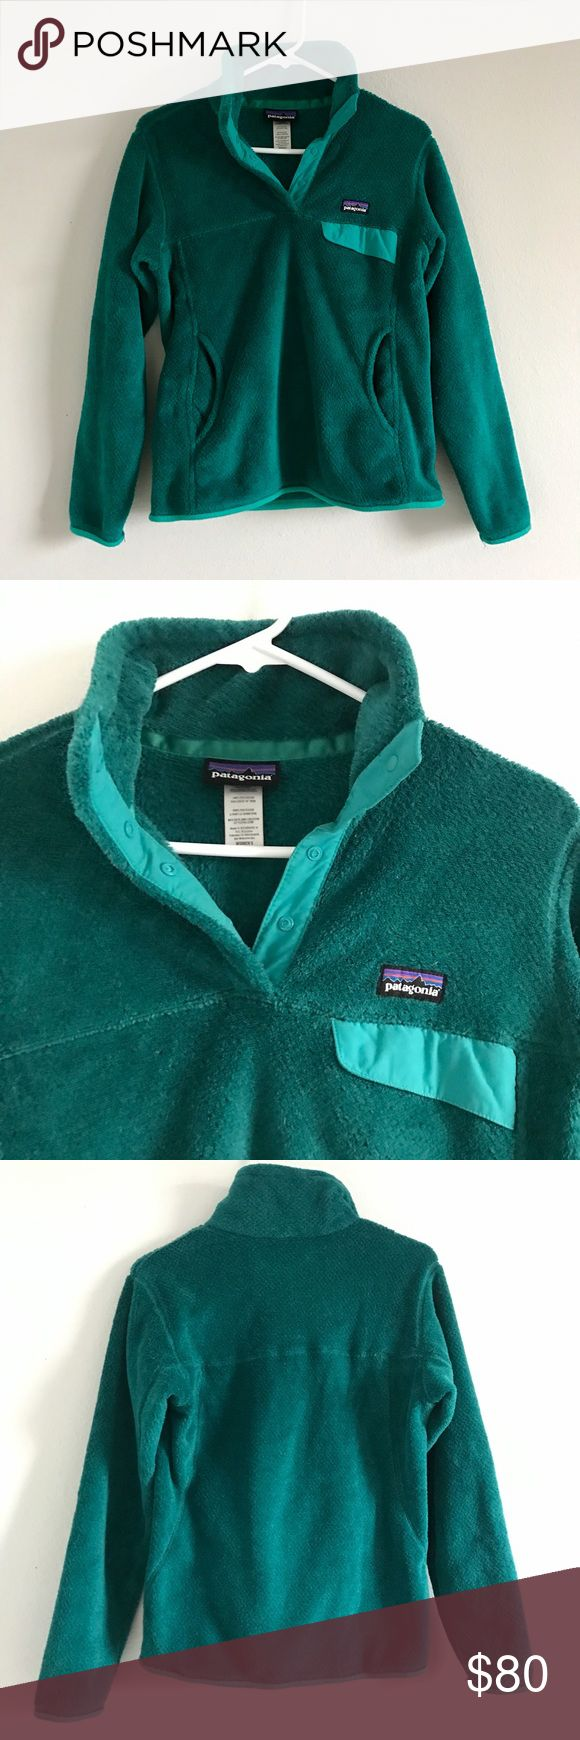 Patagonia Re-Tool Snap-T Fleece Pullover Teal Patagonia fleece in GREAT condition! No flaws, pilling, stains, or any other signs of wear--just didn't end up wearing it much this season! Patagonia Jackets & Coats